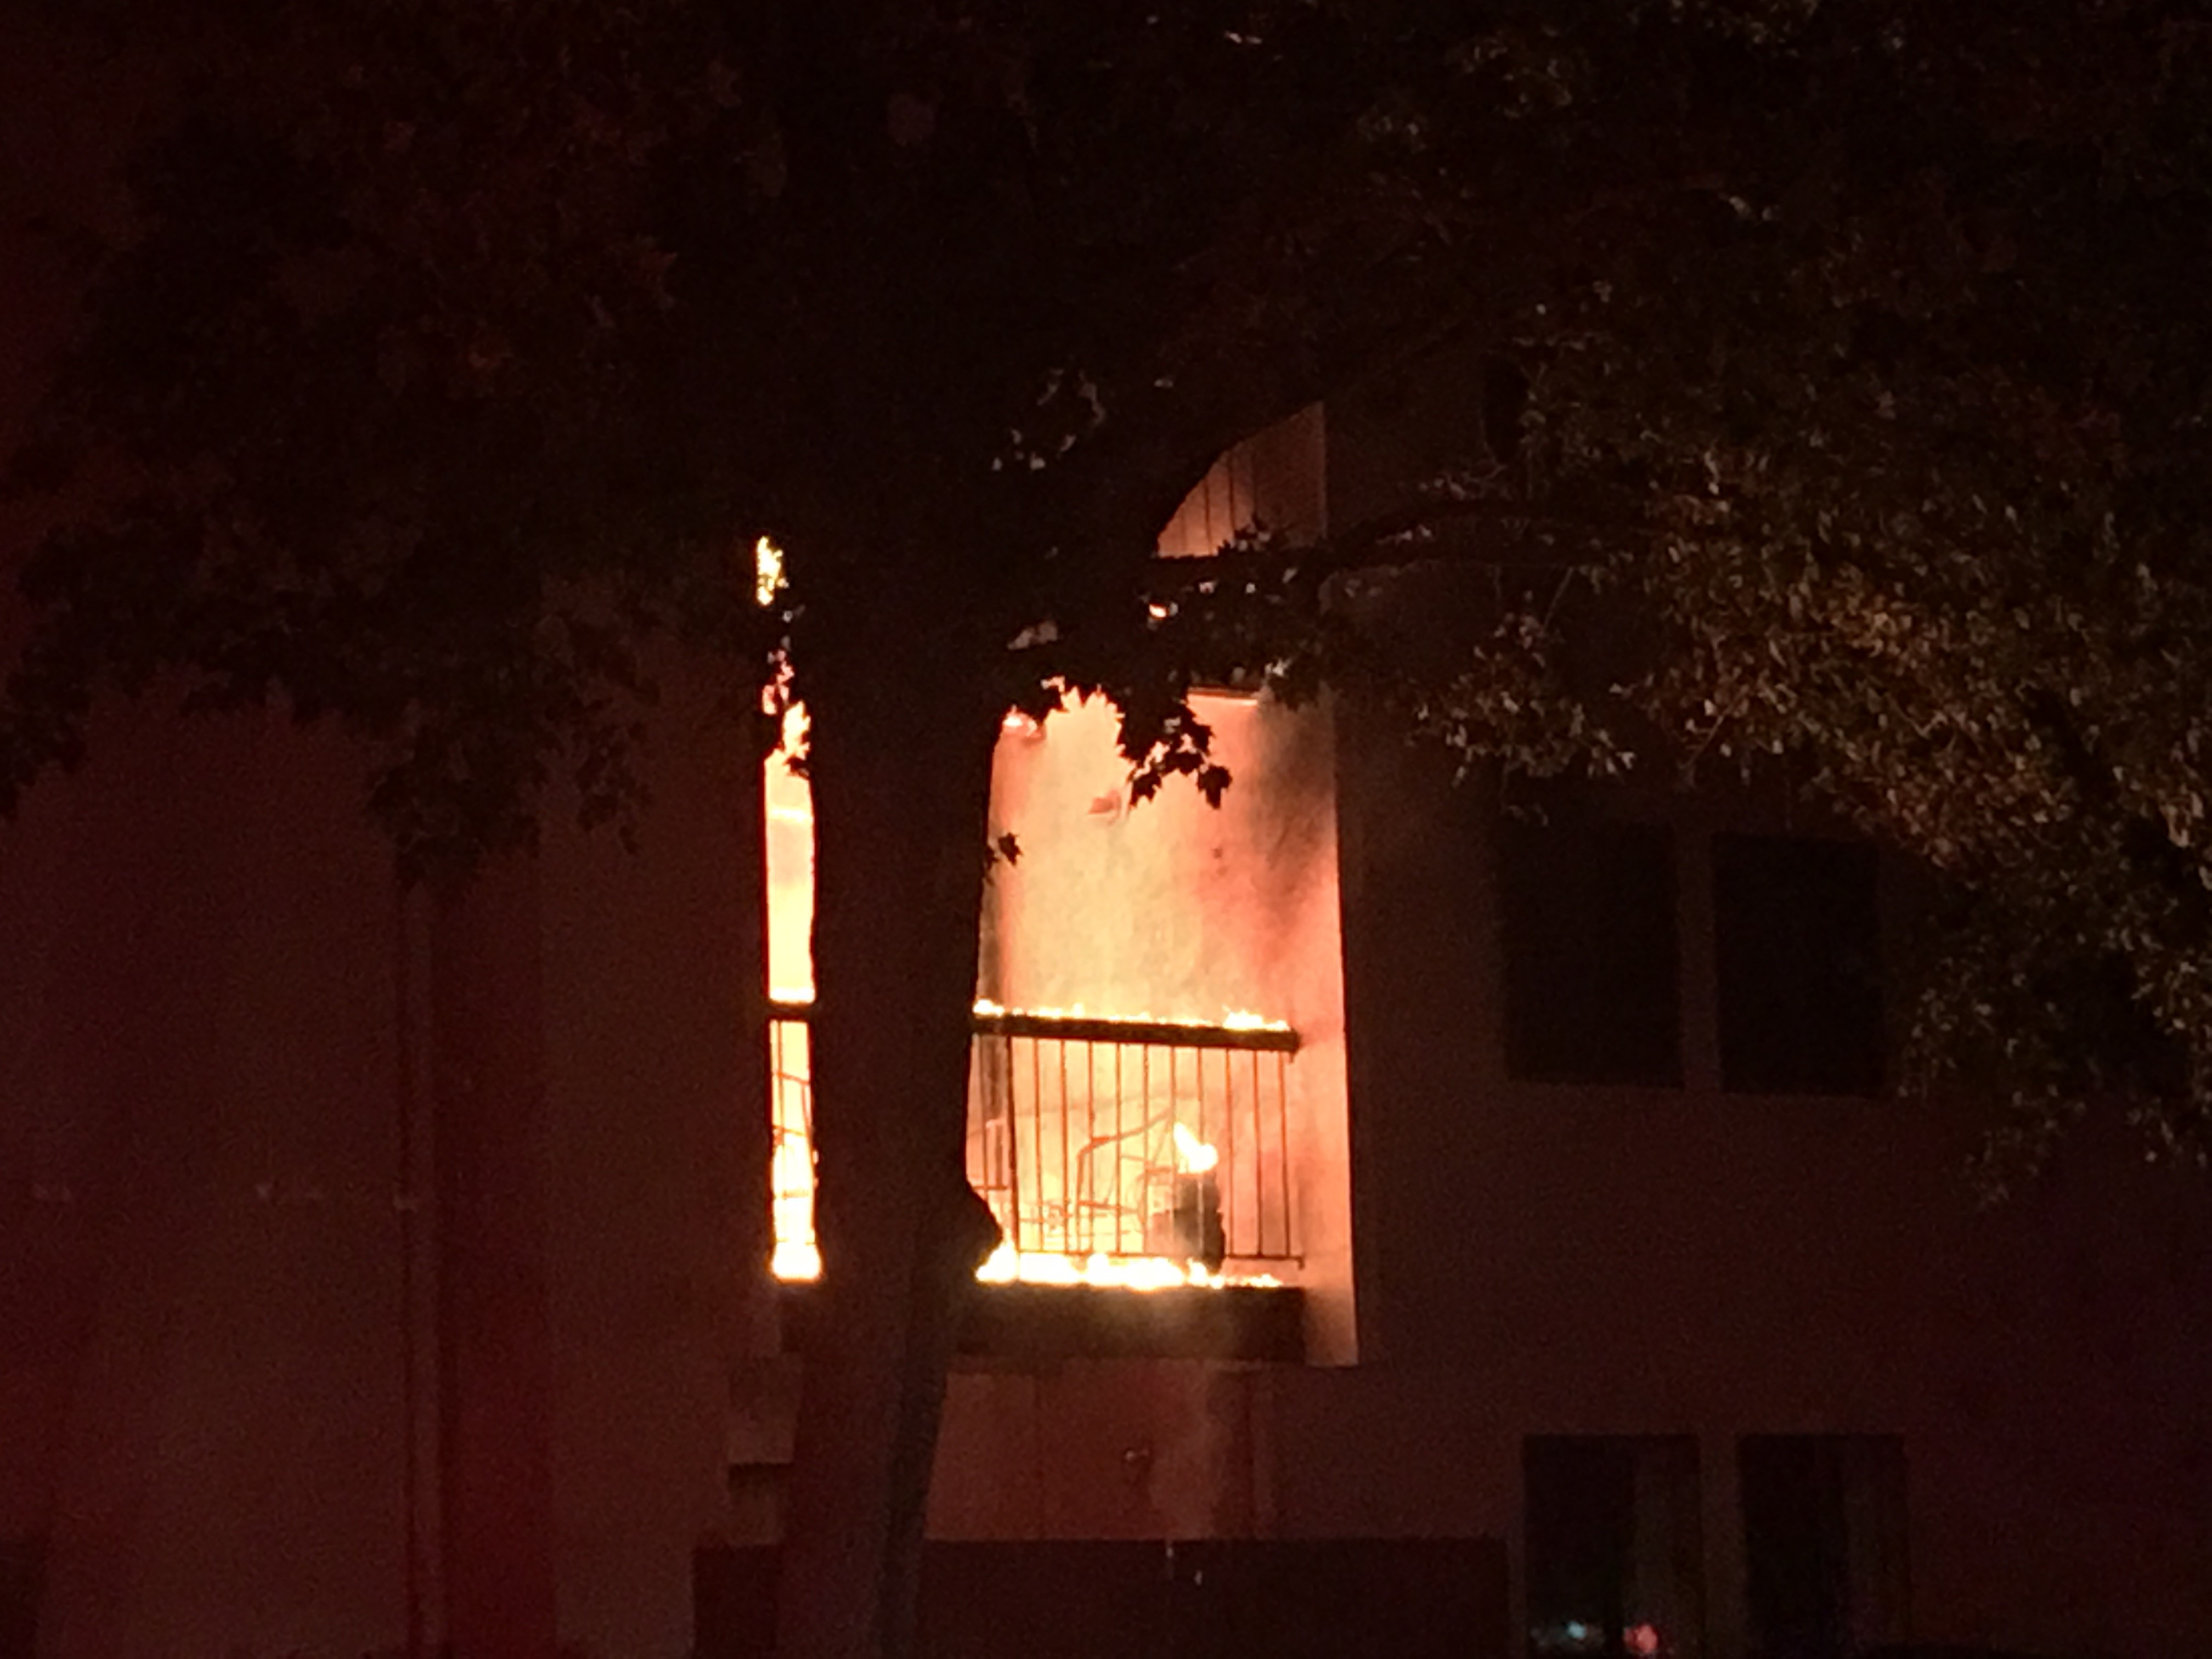 Crews battle fire at apartment building near Washoe golf course in Reno (SBG)